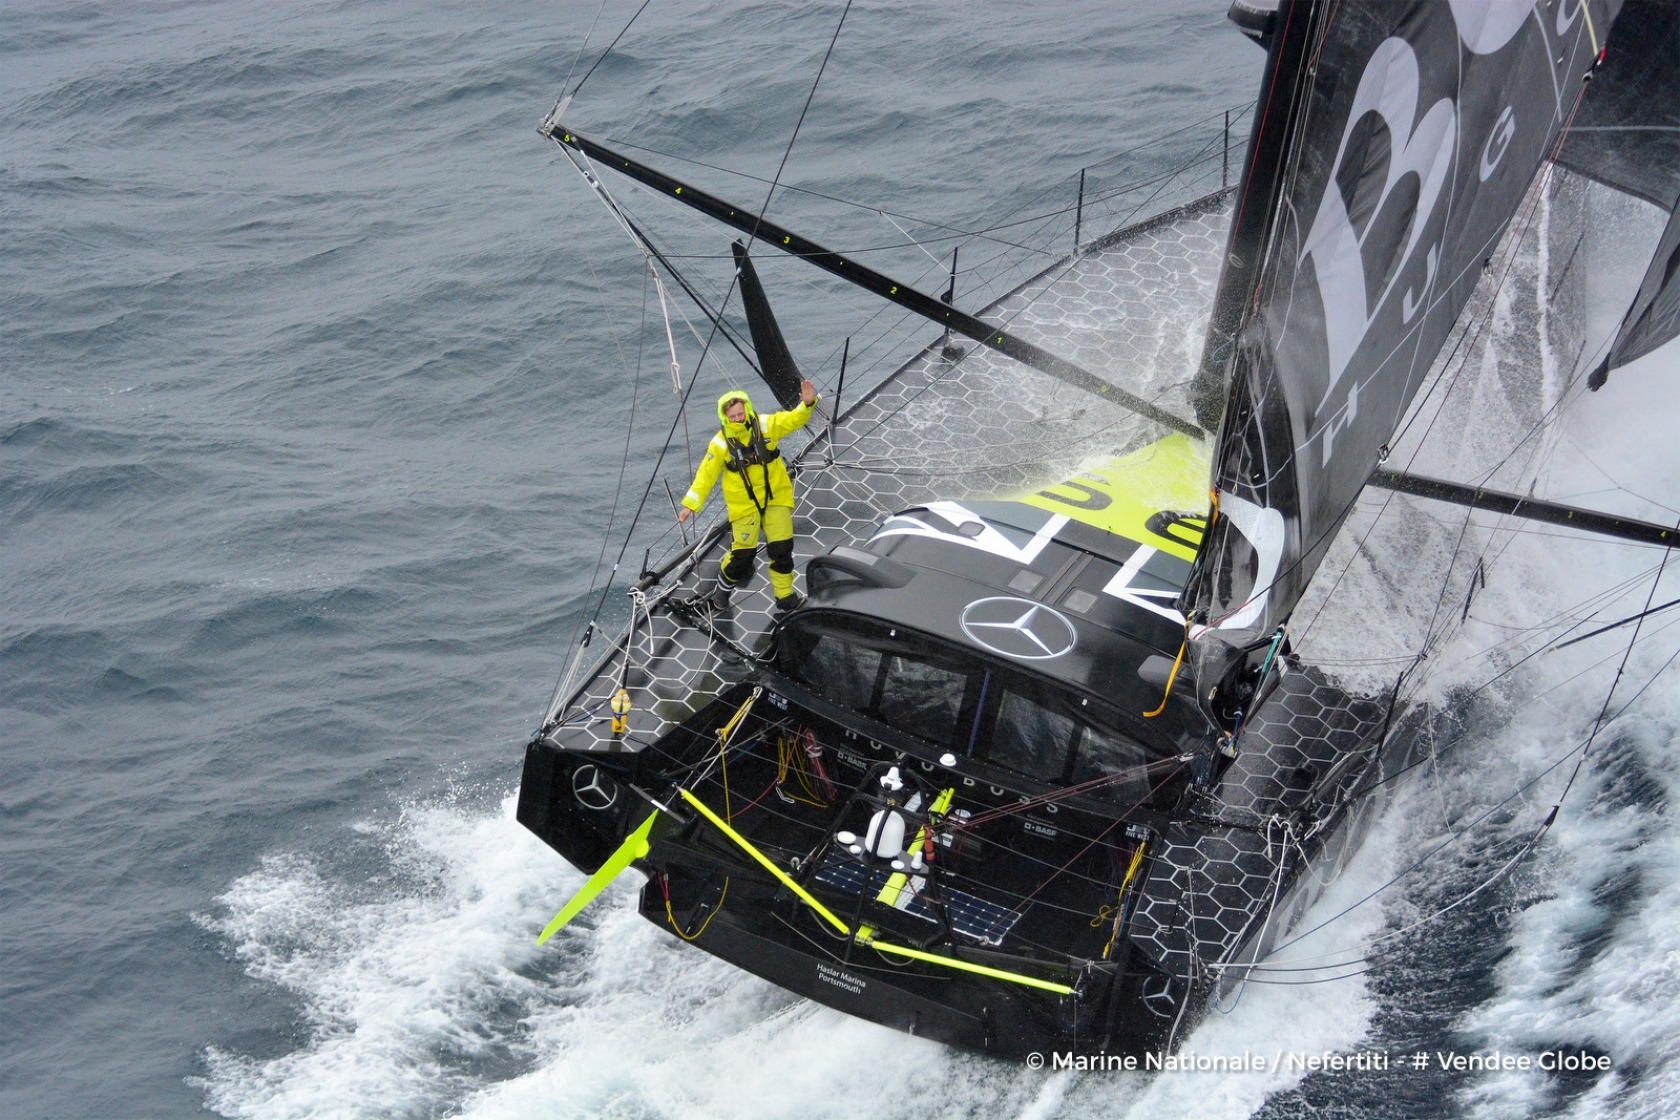 Aerial shot of Hugo Boss, skipper Alex Thomson (GBR), off the Kerguelen Islands, flied over by the National French Marine Nivose Frigate, during the Vendee Globe, solo sailing race around the world, on November 30th, 2016 - Photo Marine Nationale / Nefert